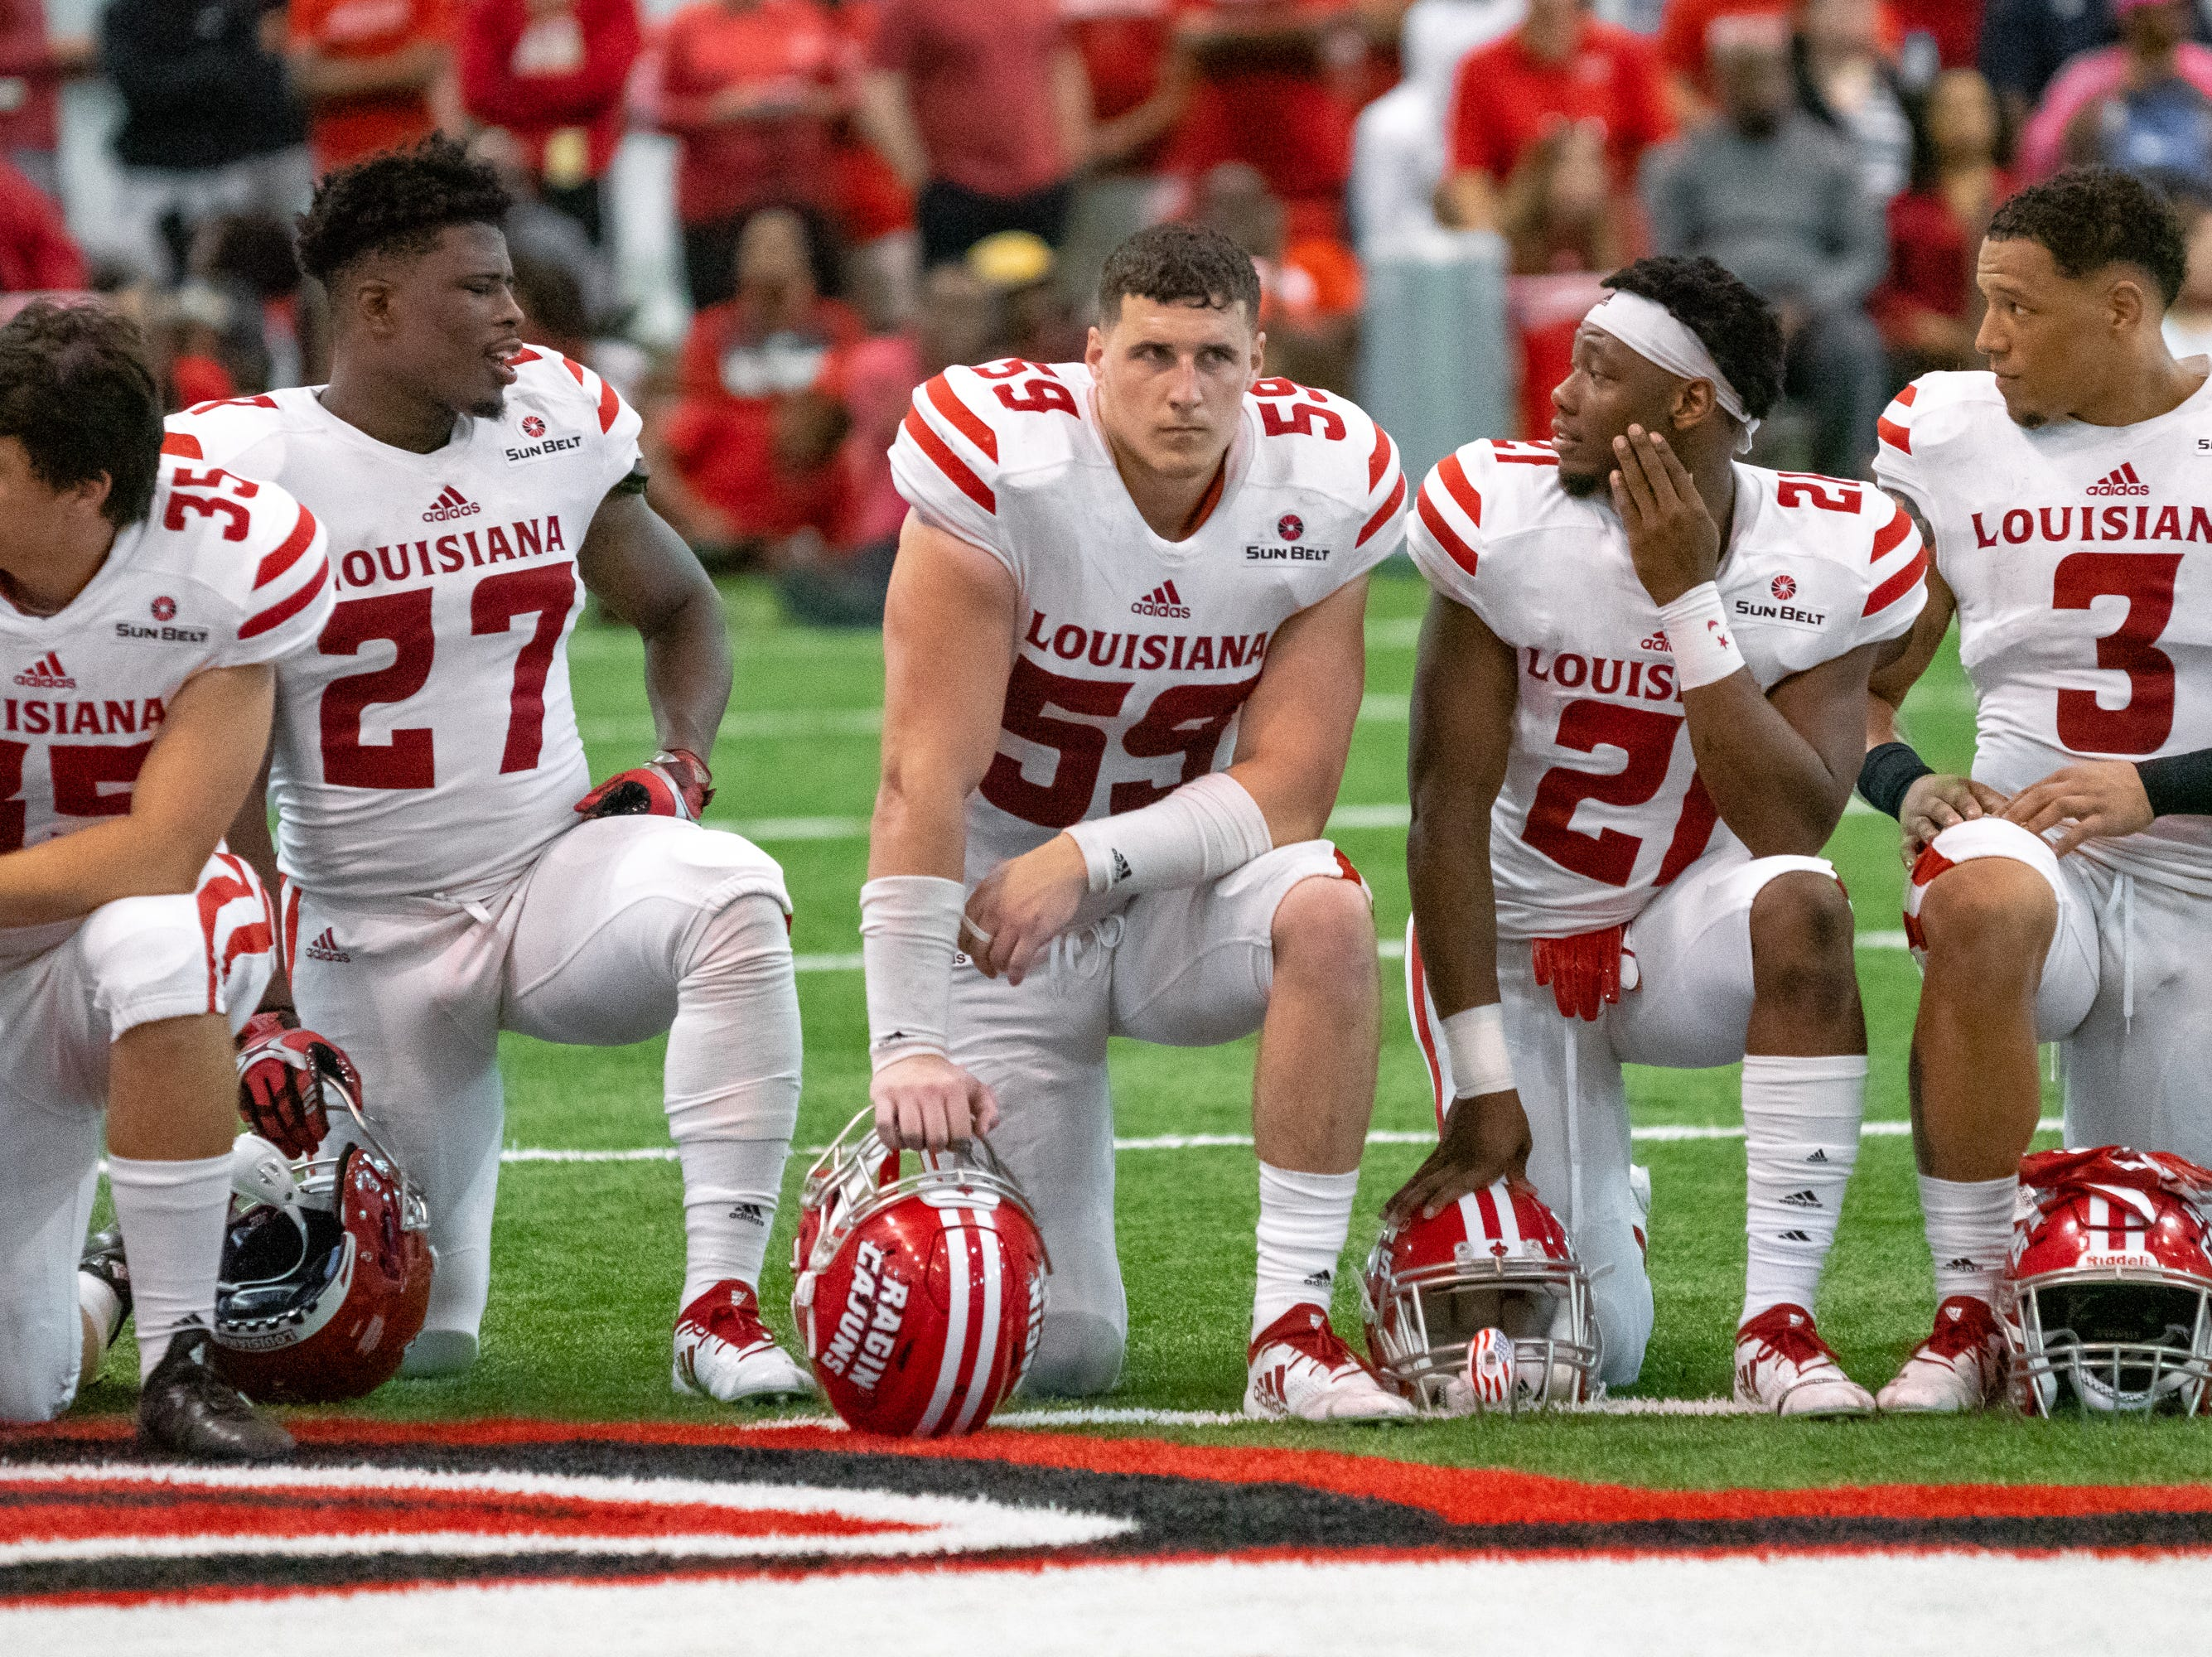 UL's Jacques Boudreaux (59)  kneels on the field during halftime as the Ragin' Cajuns football team plays their annual Spring football game against one another in the Leon Moncla trainig facility on April 13, 2019.